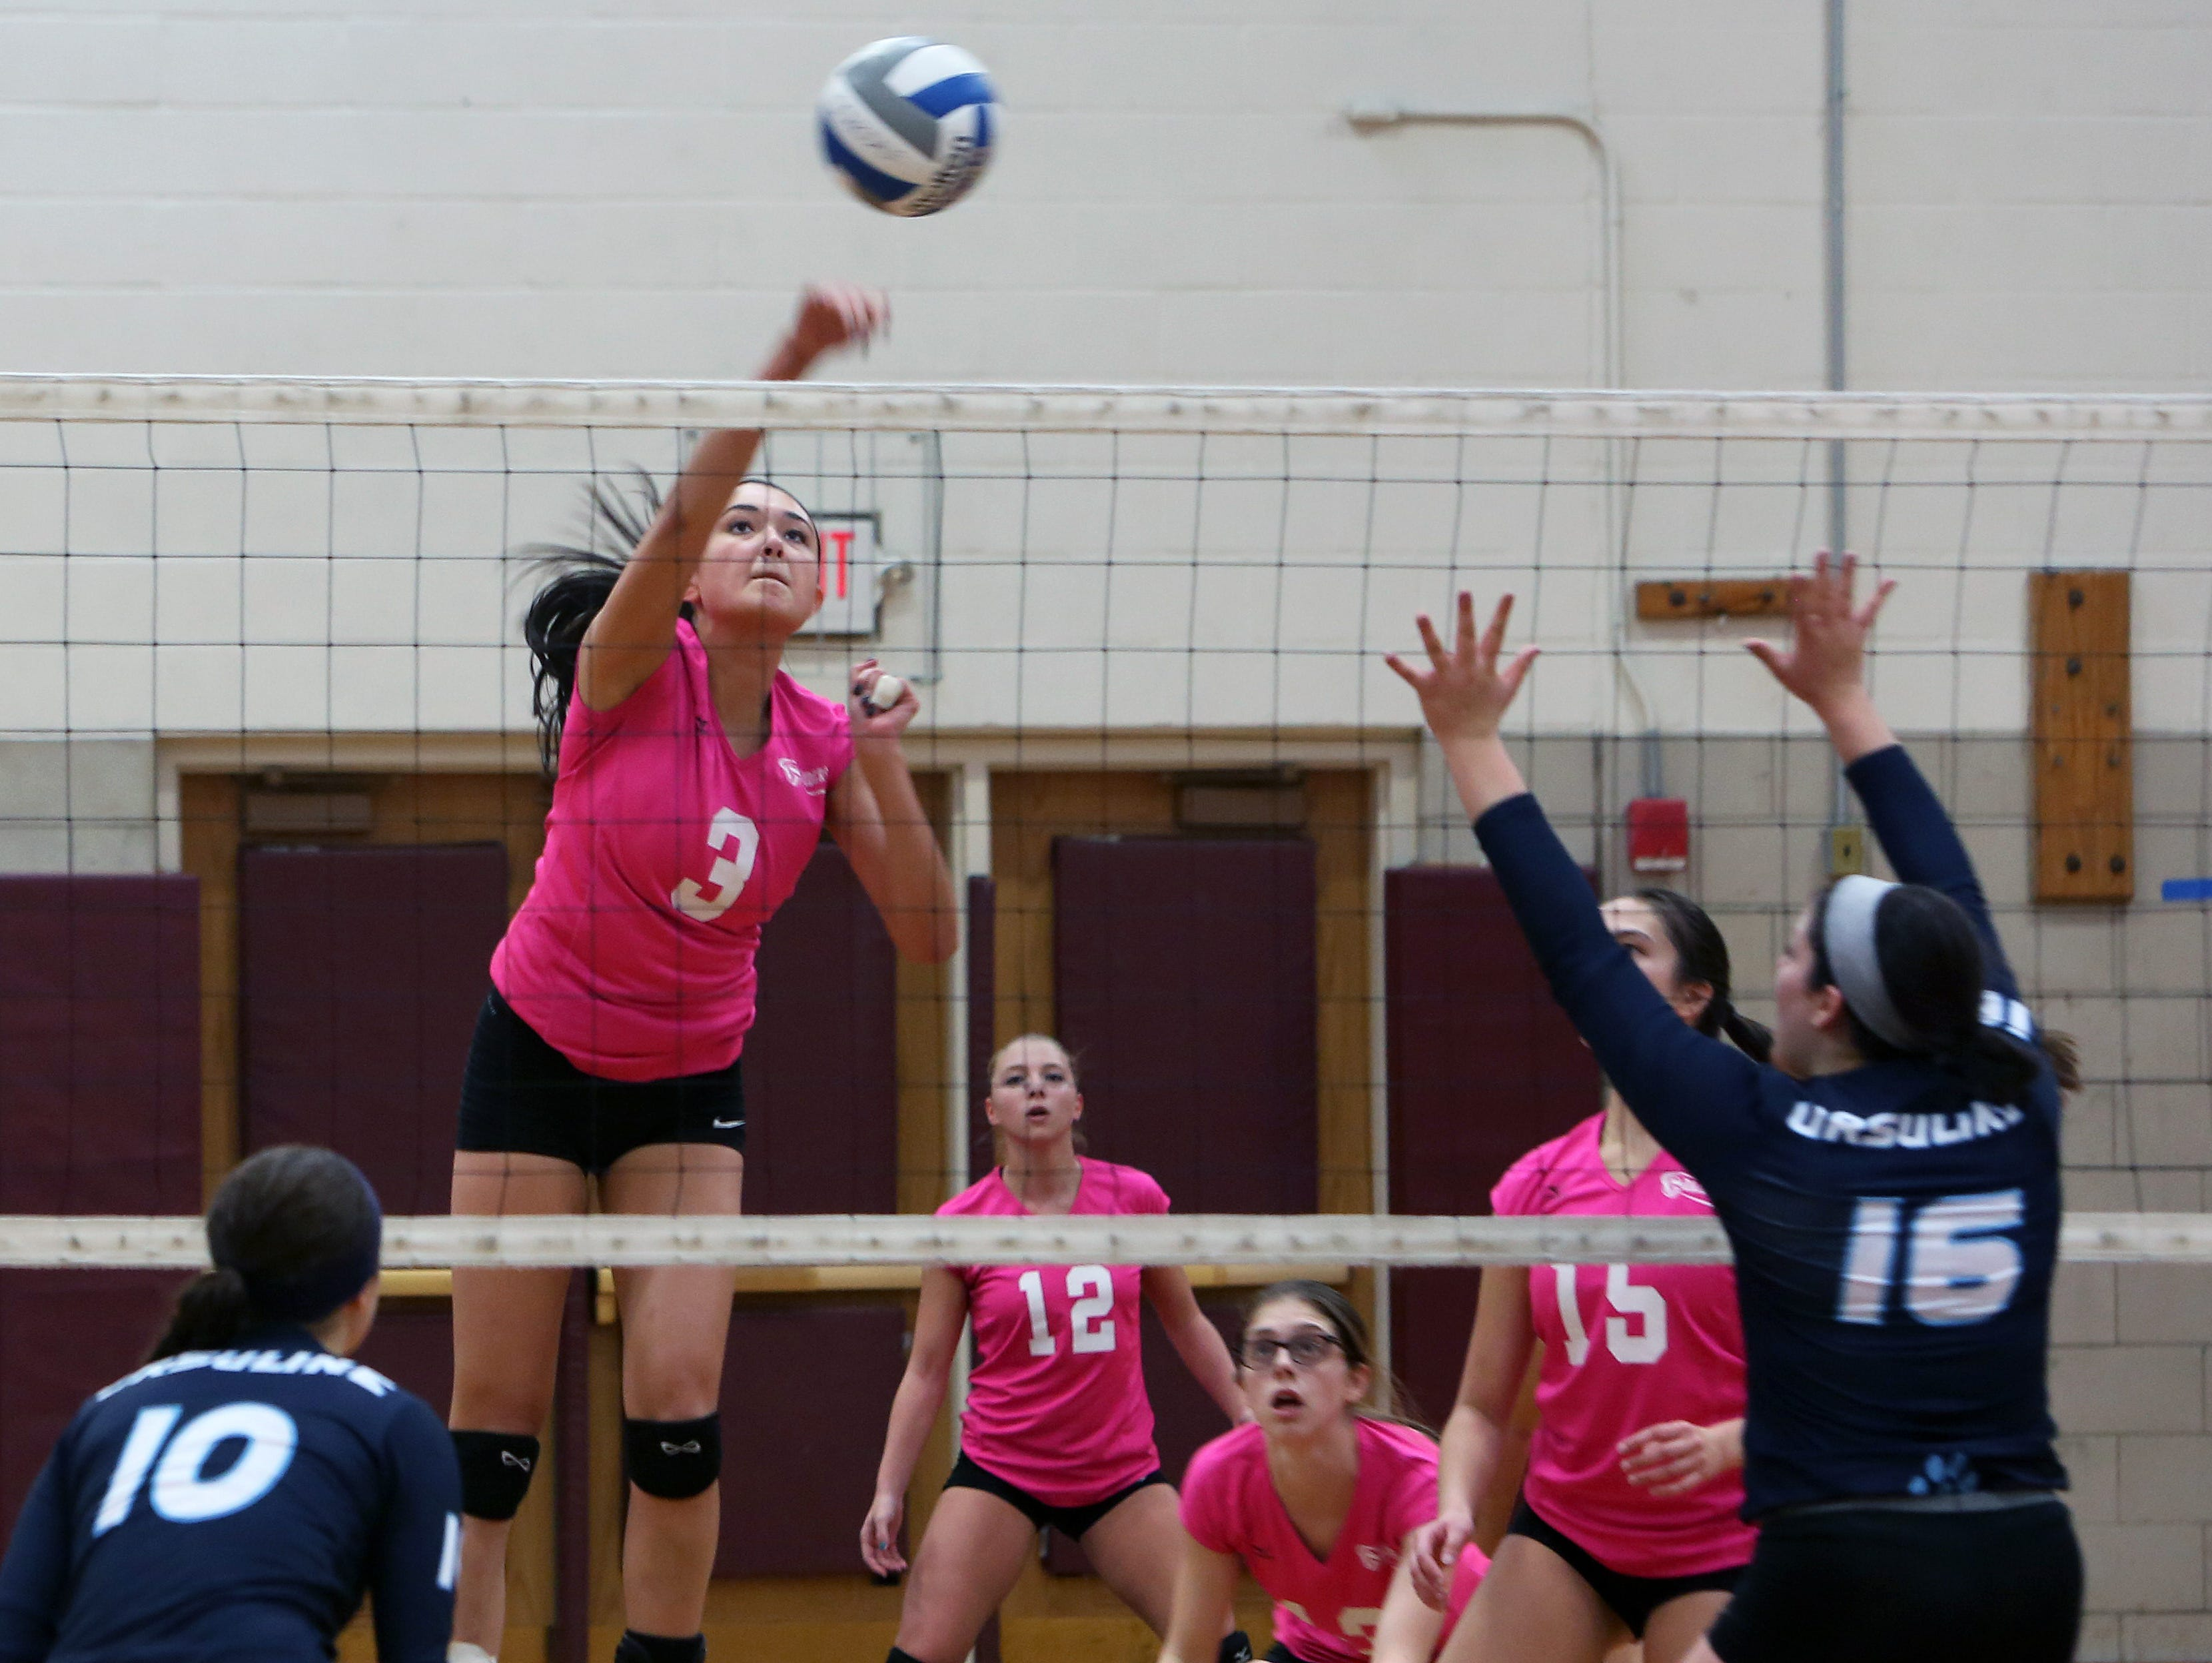 Scarsdale's Tatiana Tiango (3) gets a shot by Ursuline's Rebecca Caruso (16) during volleyball action at Scarsdale High School Oct. 20, 2015. Scarsdale swept Ursuline, 25-20, 25-16, and 25-23.